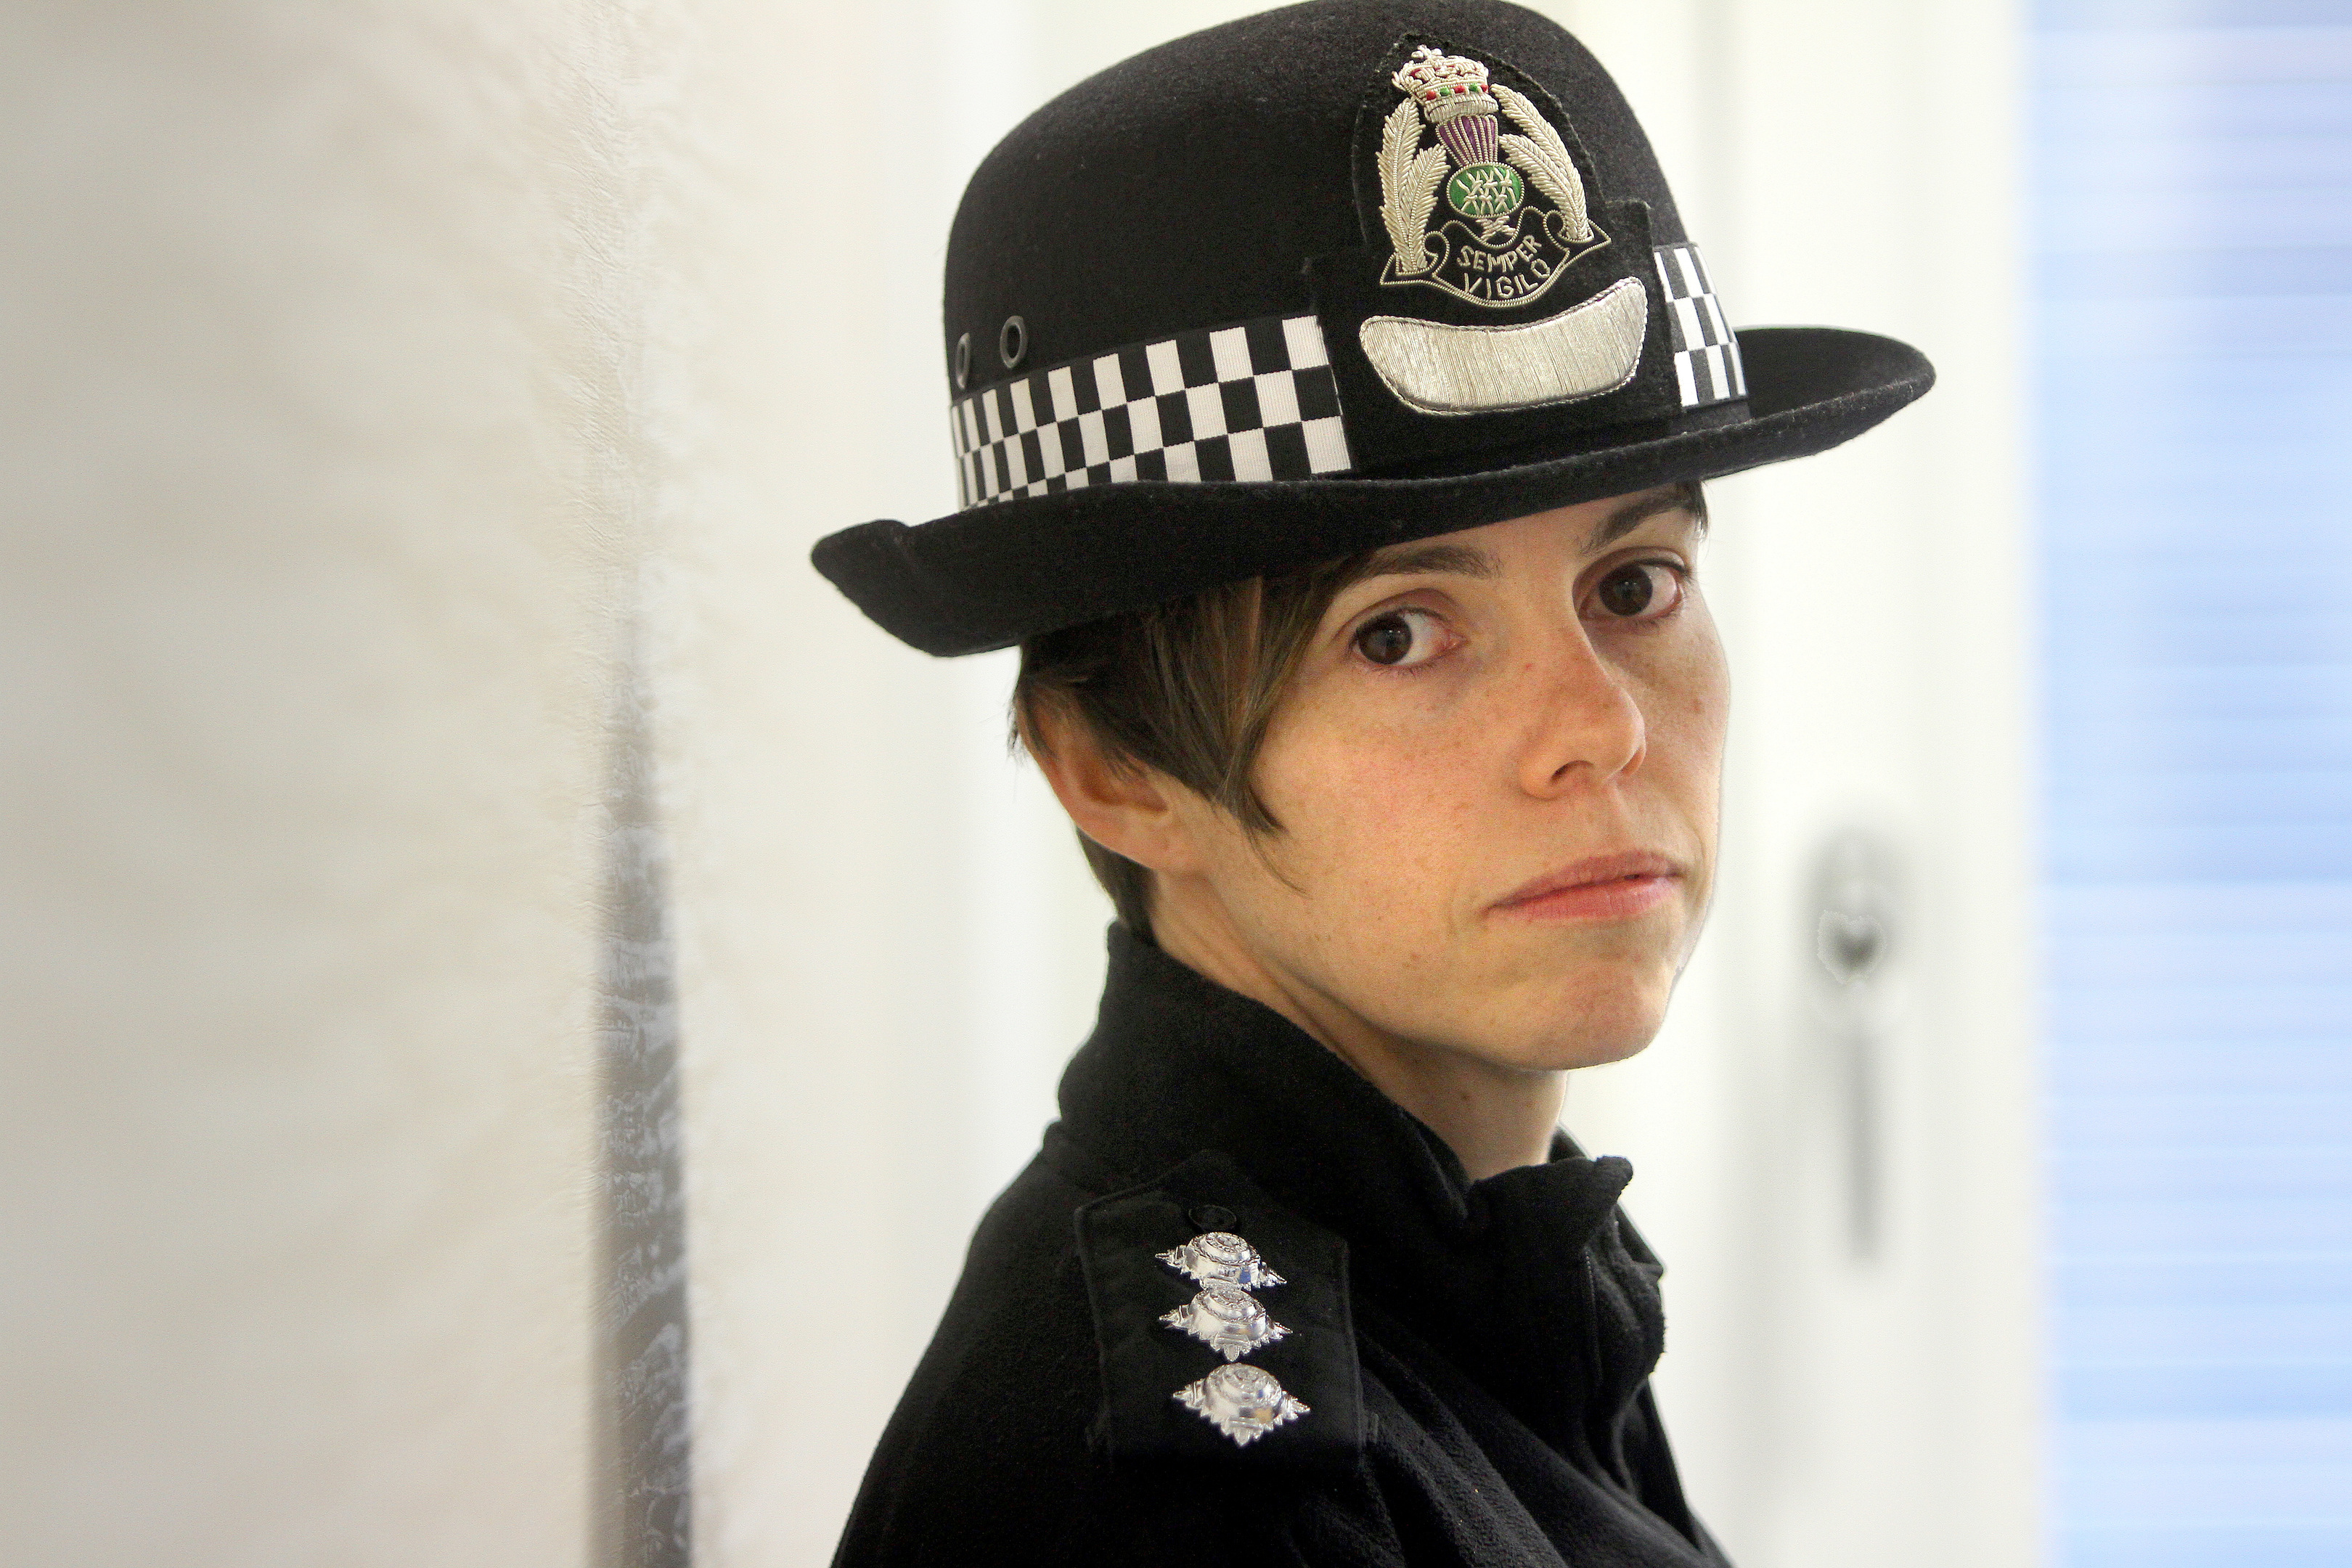 Chief Inspector Nicola Russell